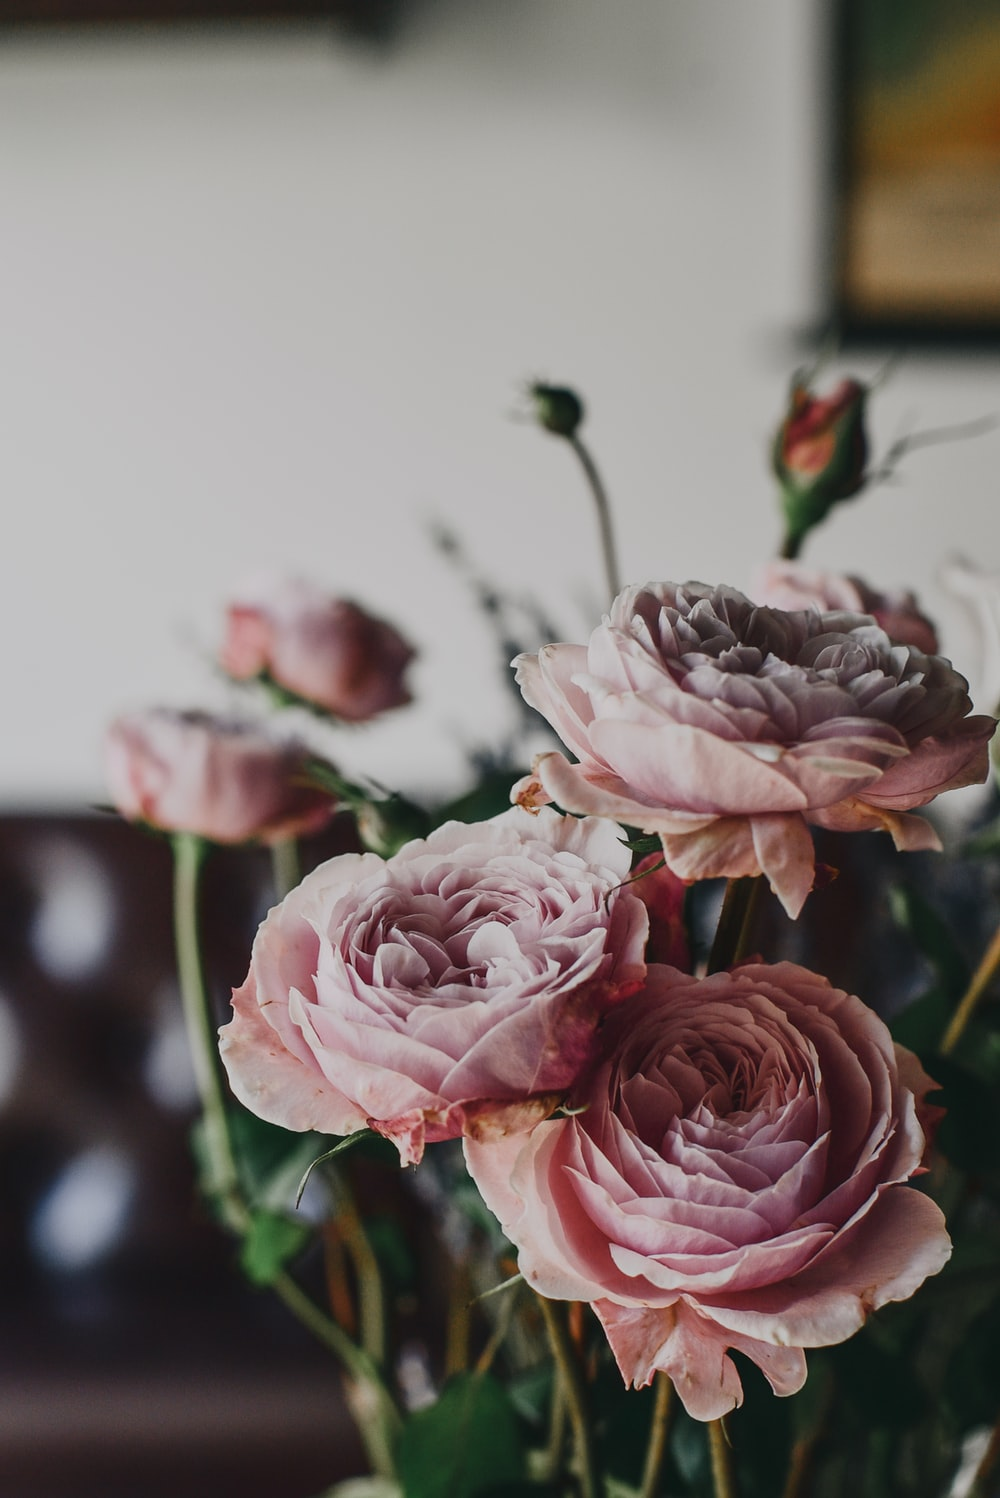 pink rose flowers with green leaves